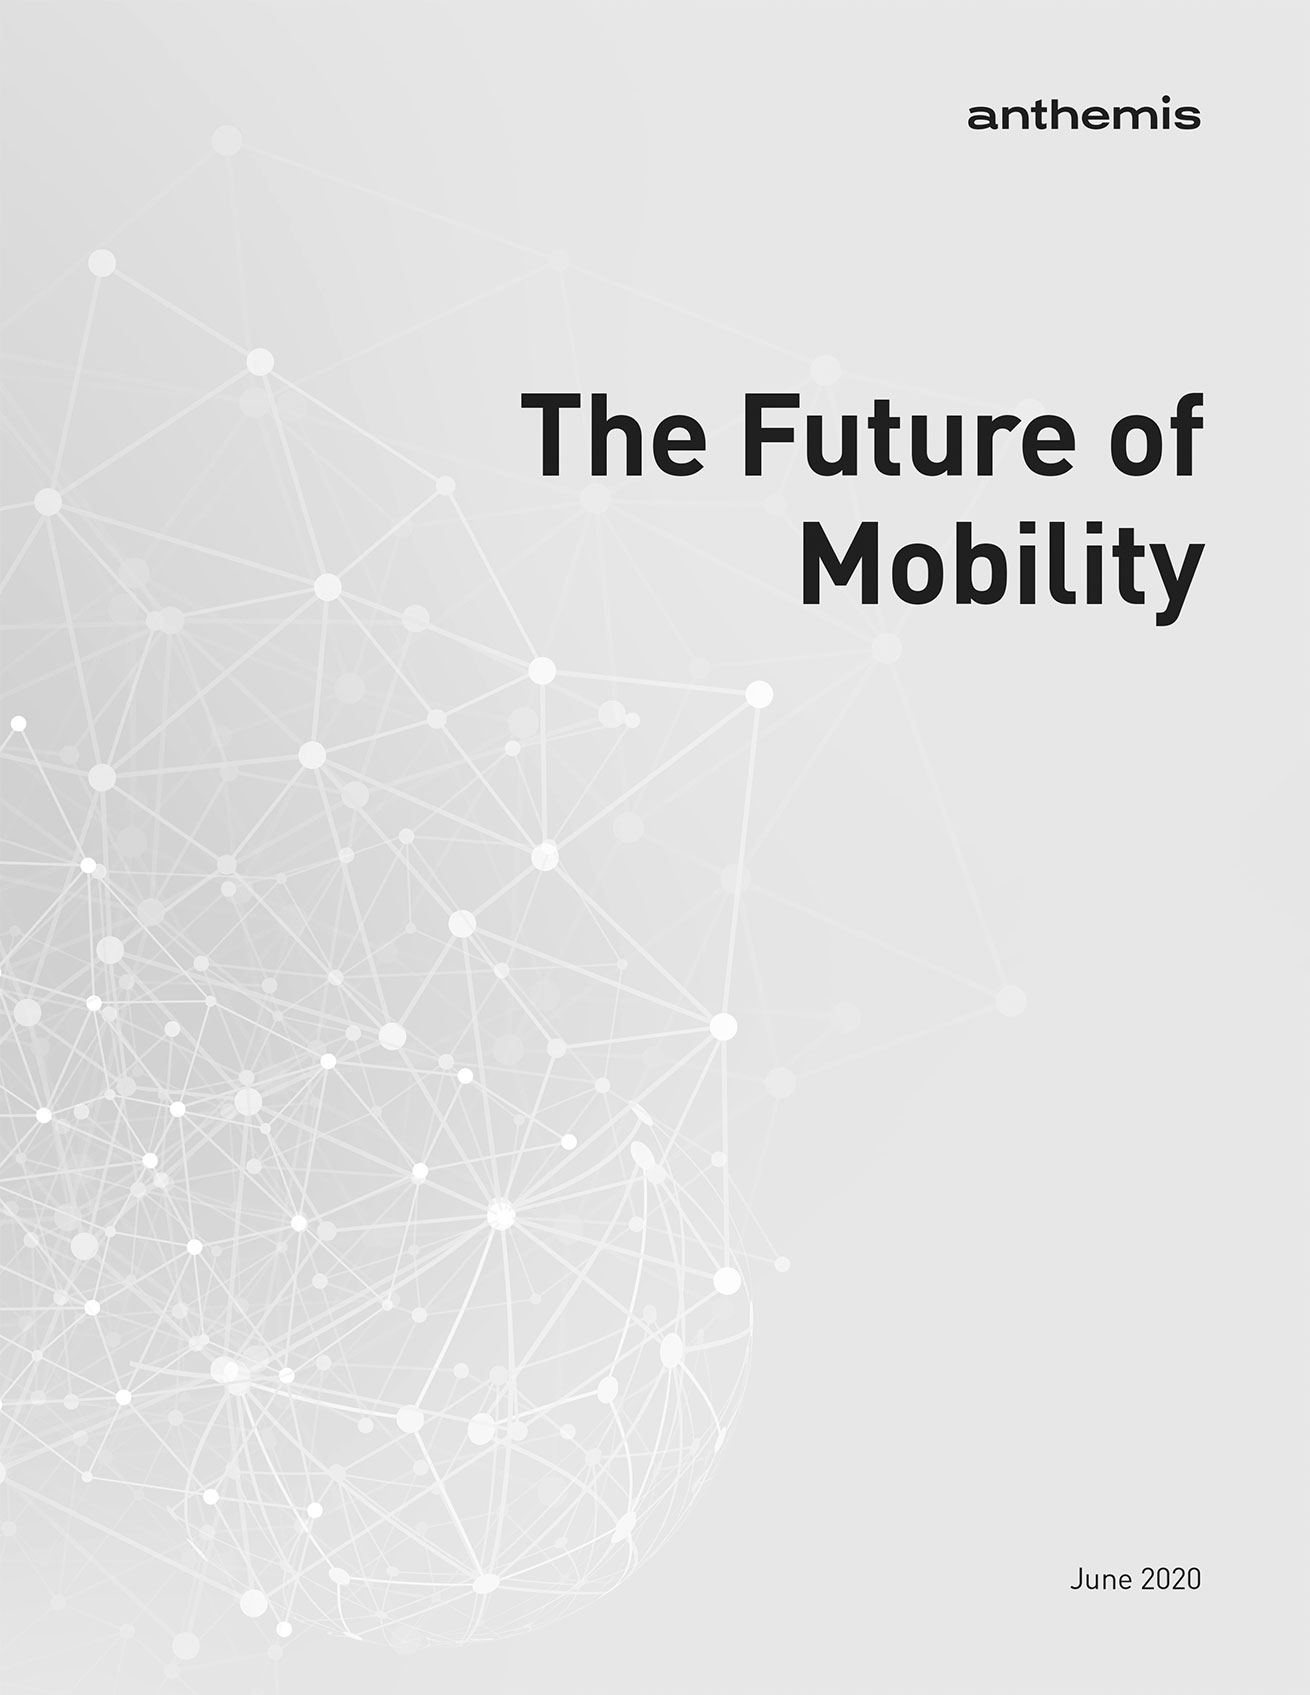 Anthemis-The-Future-of-Mobility-White-Paper-June-2020